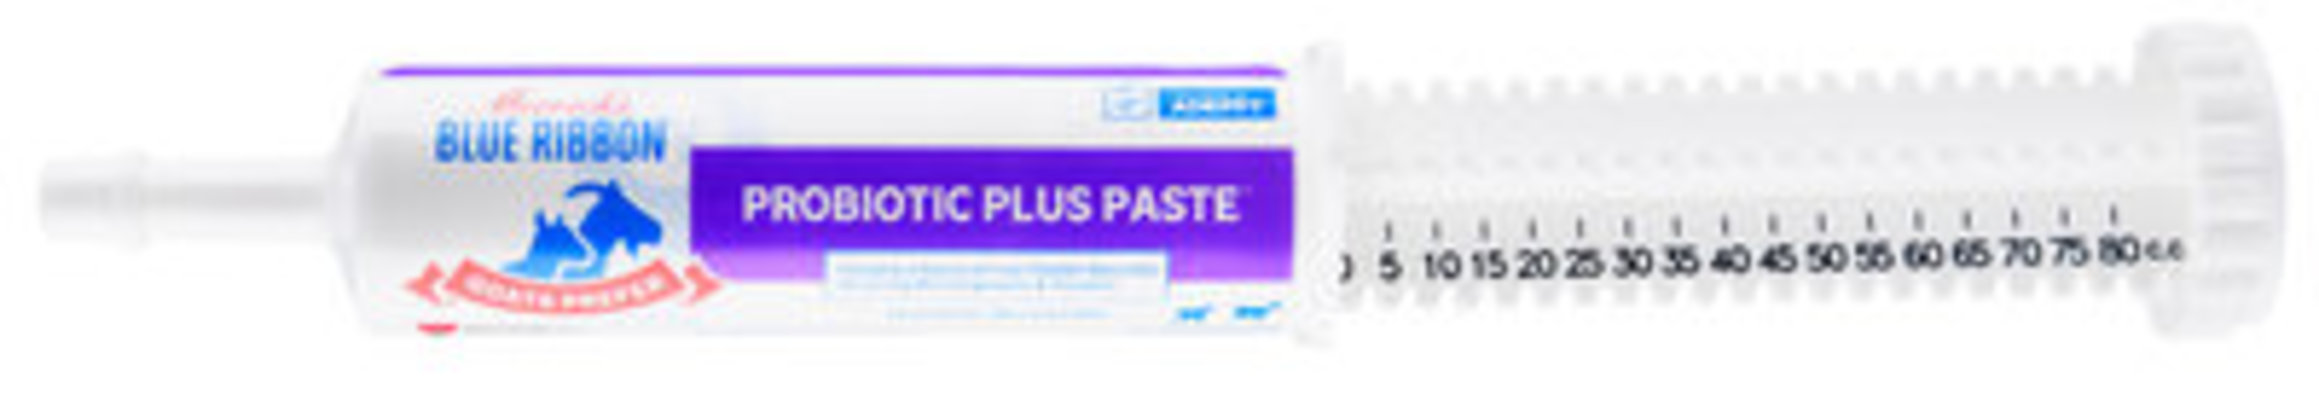 Goats Prefer Probiotic Plus Paste, 80 cc